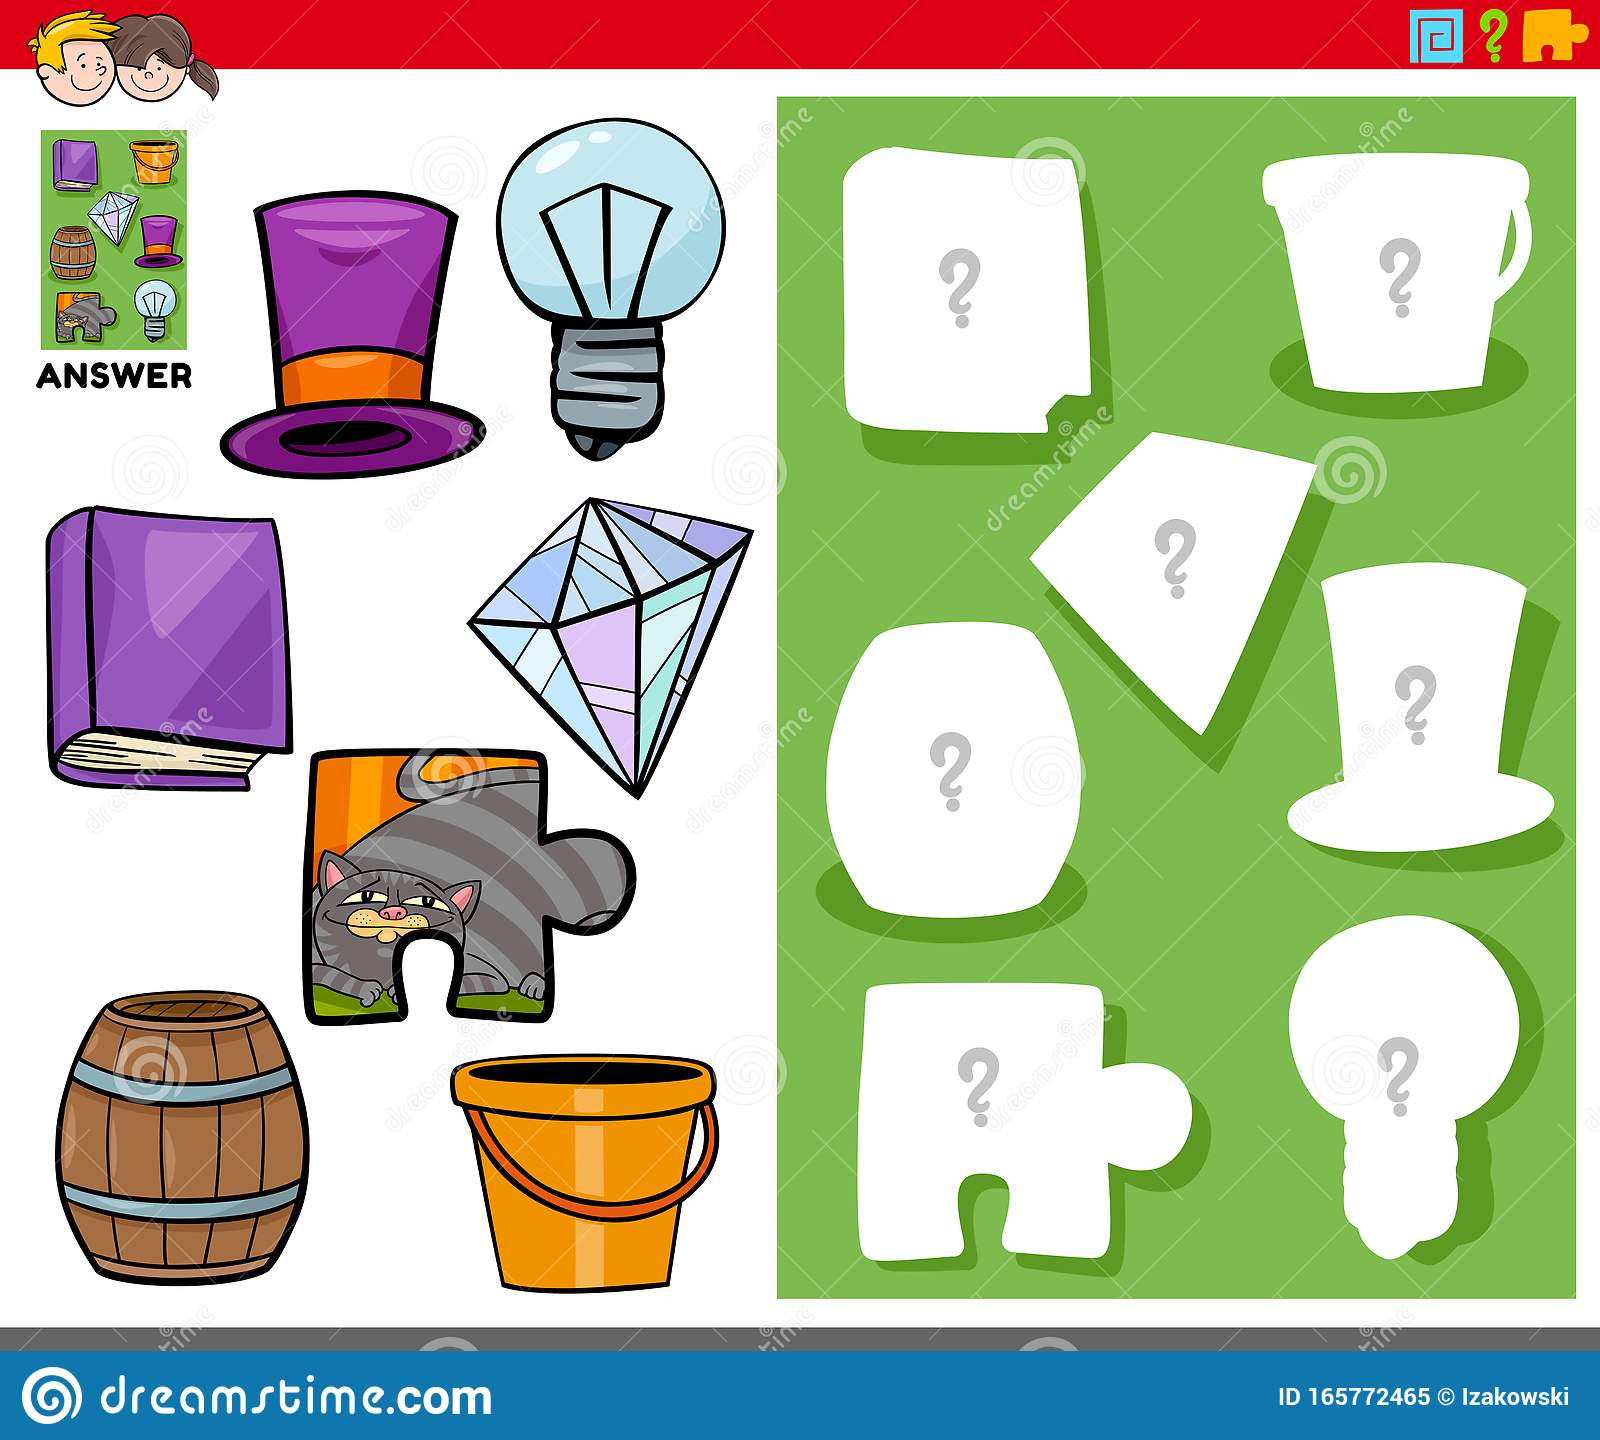 Matching Shapes Game With Cartoon Objects Stock Vector